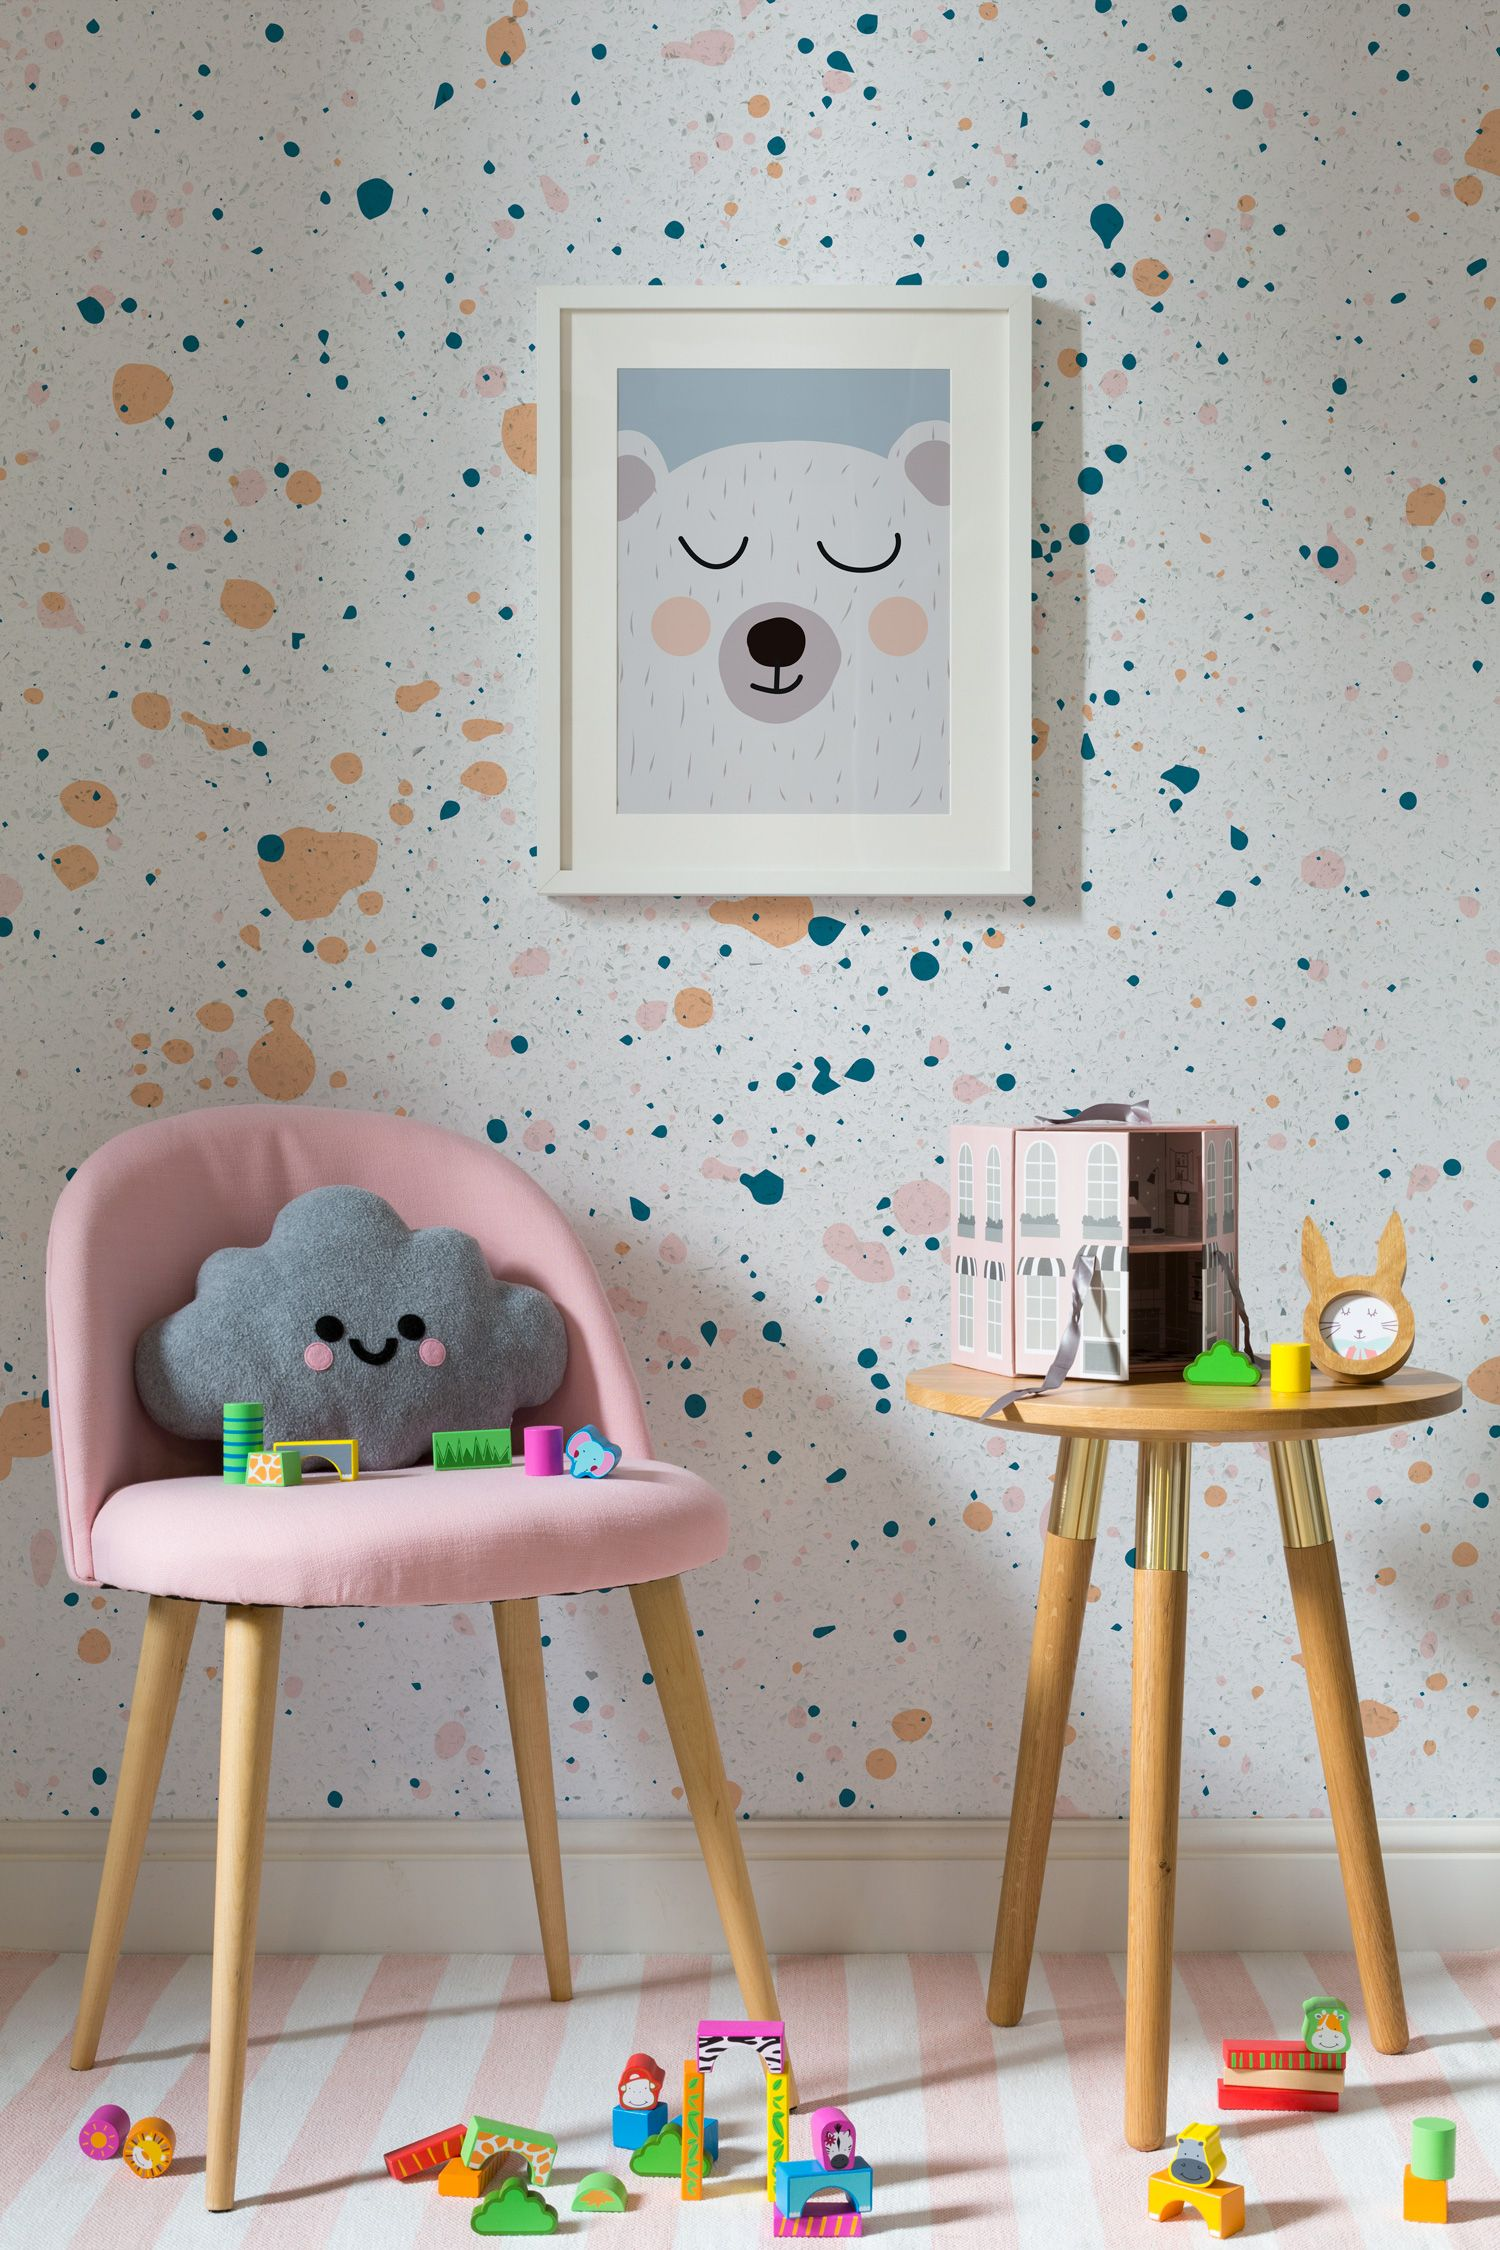 On The Lookout For Playful Wallpaper Designs? This Speckle Wallpaper Design  Combines Bright Colours With Joyful Paint Splatters. Perfect For Kidu0027s Rooms  And ...